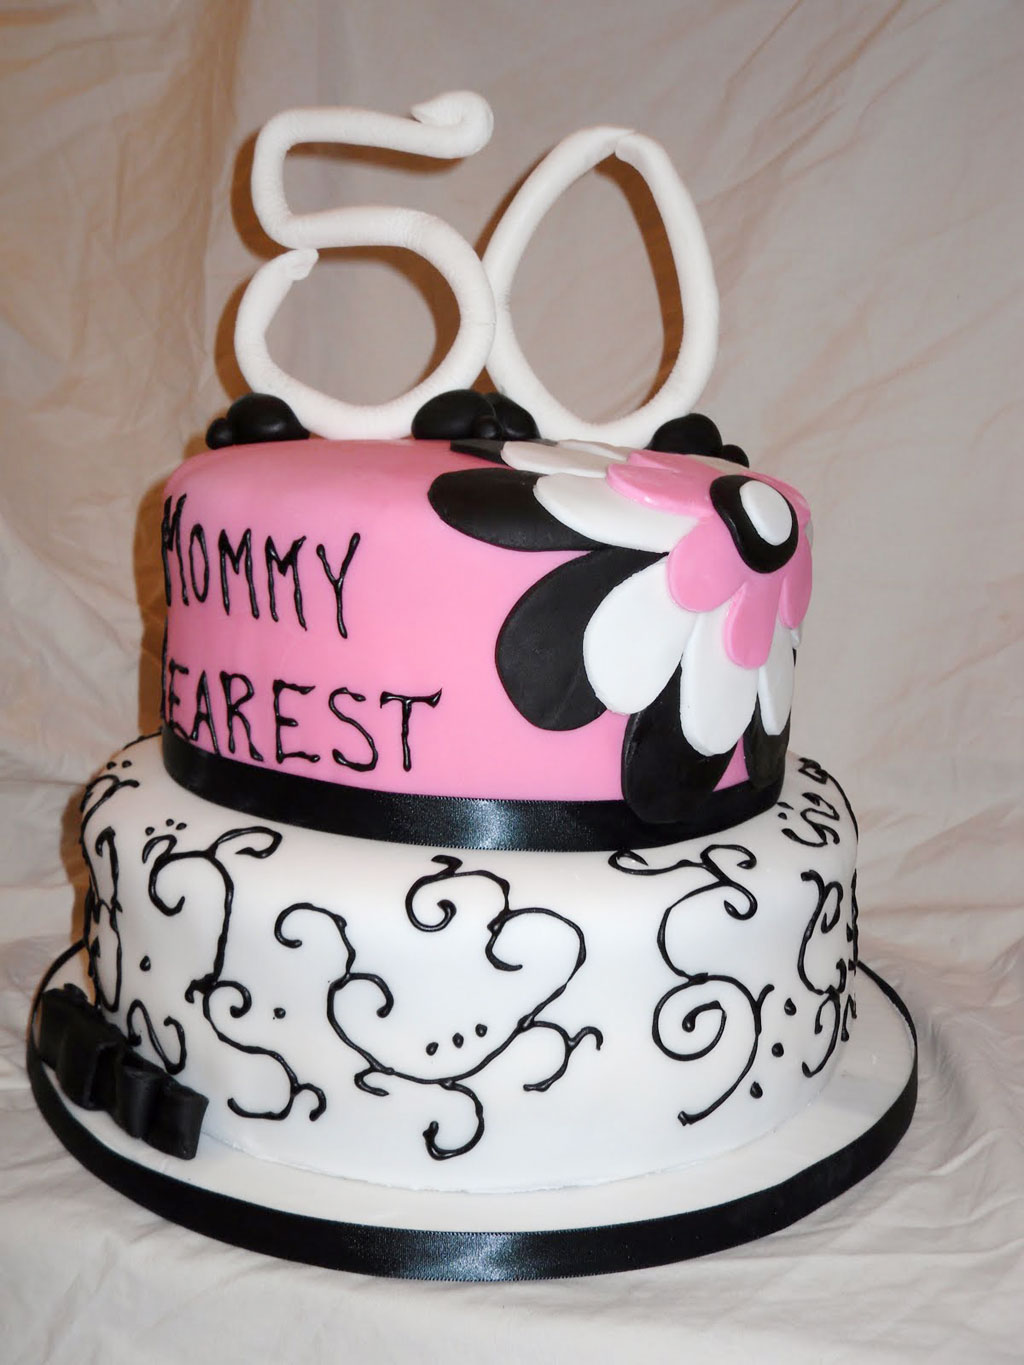 Easy 50th Birthday Cake Ideas Birthday Cake